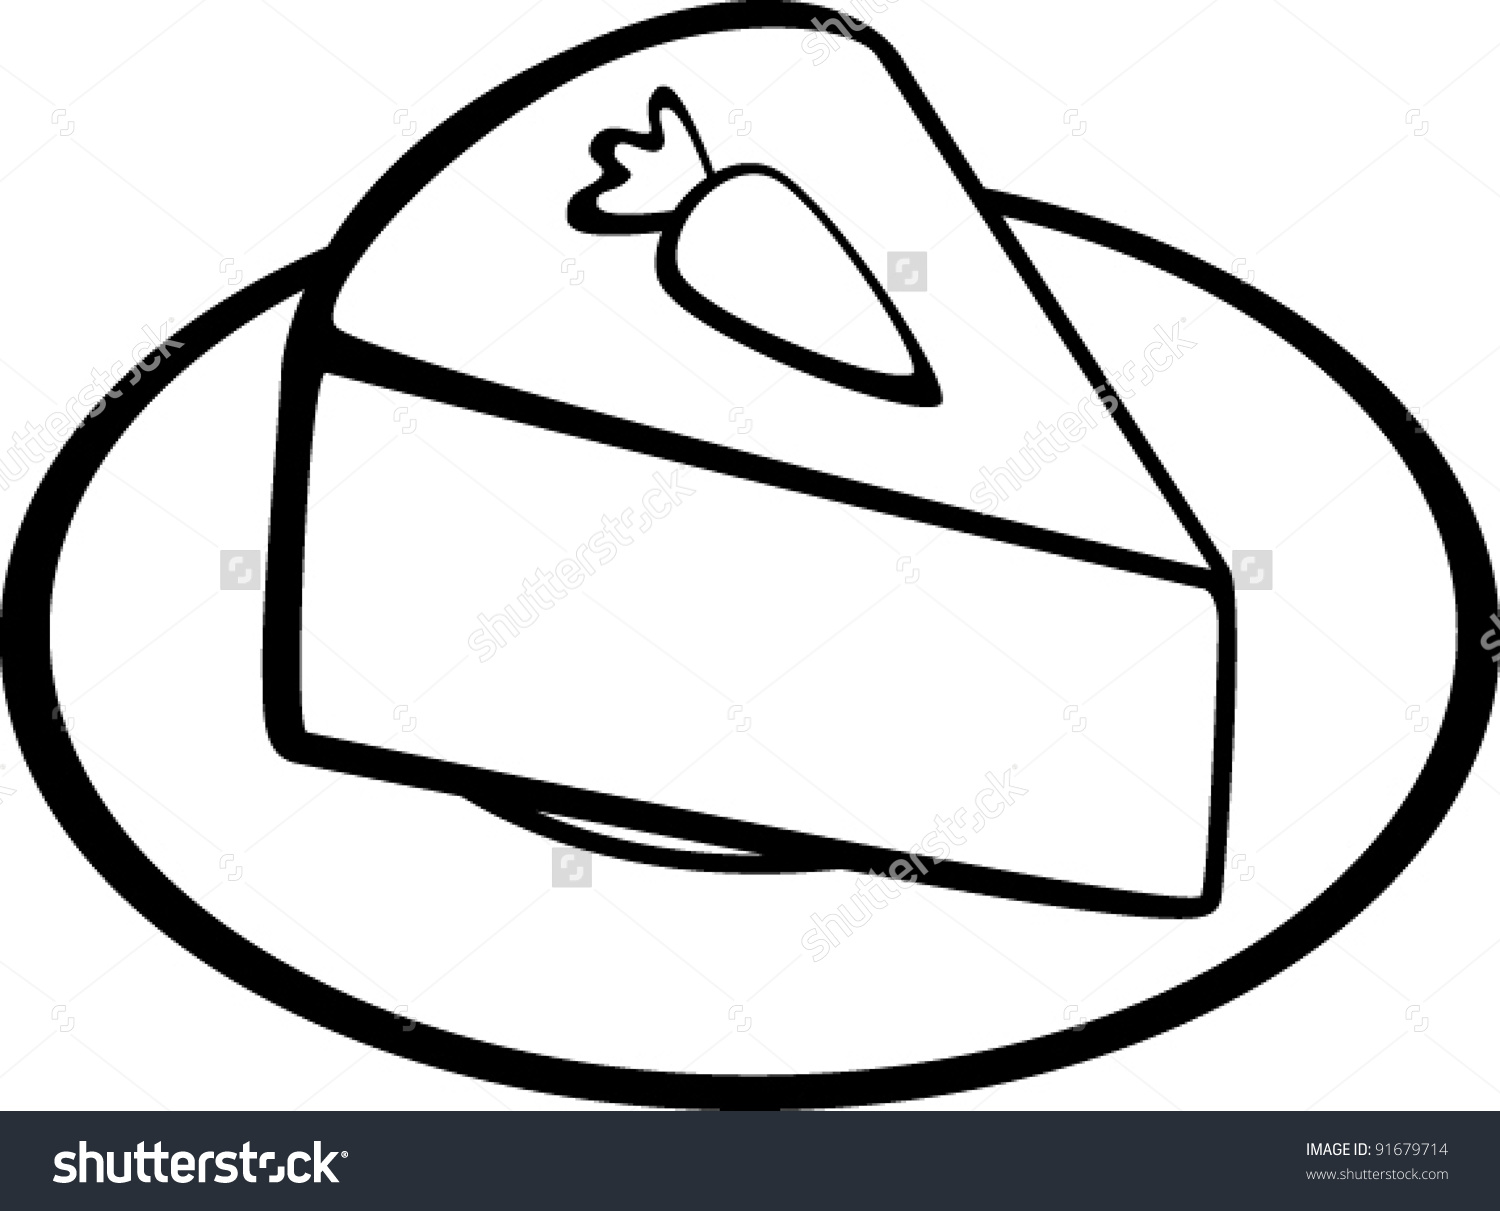 Carrot Cake Stock Vector 91679714.